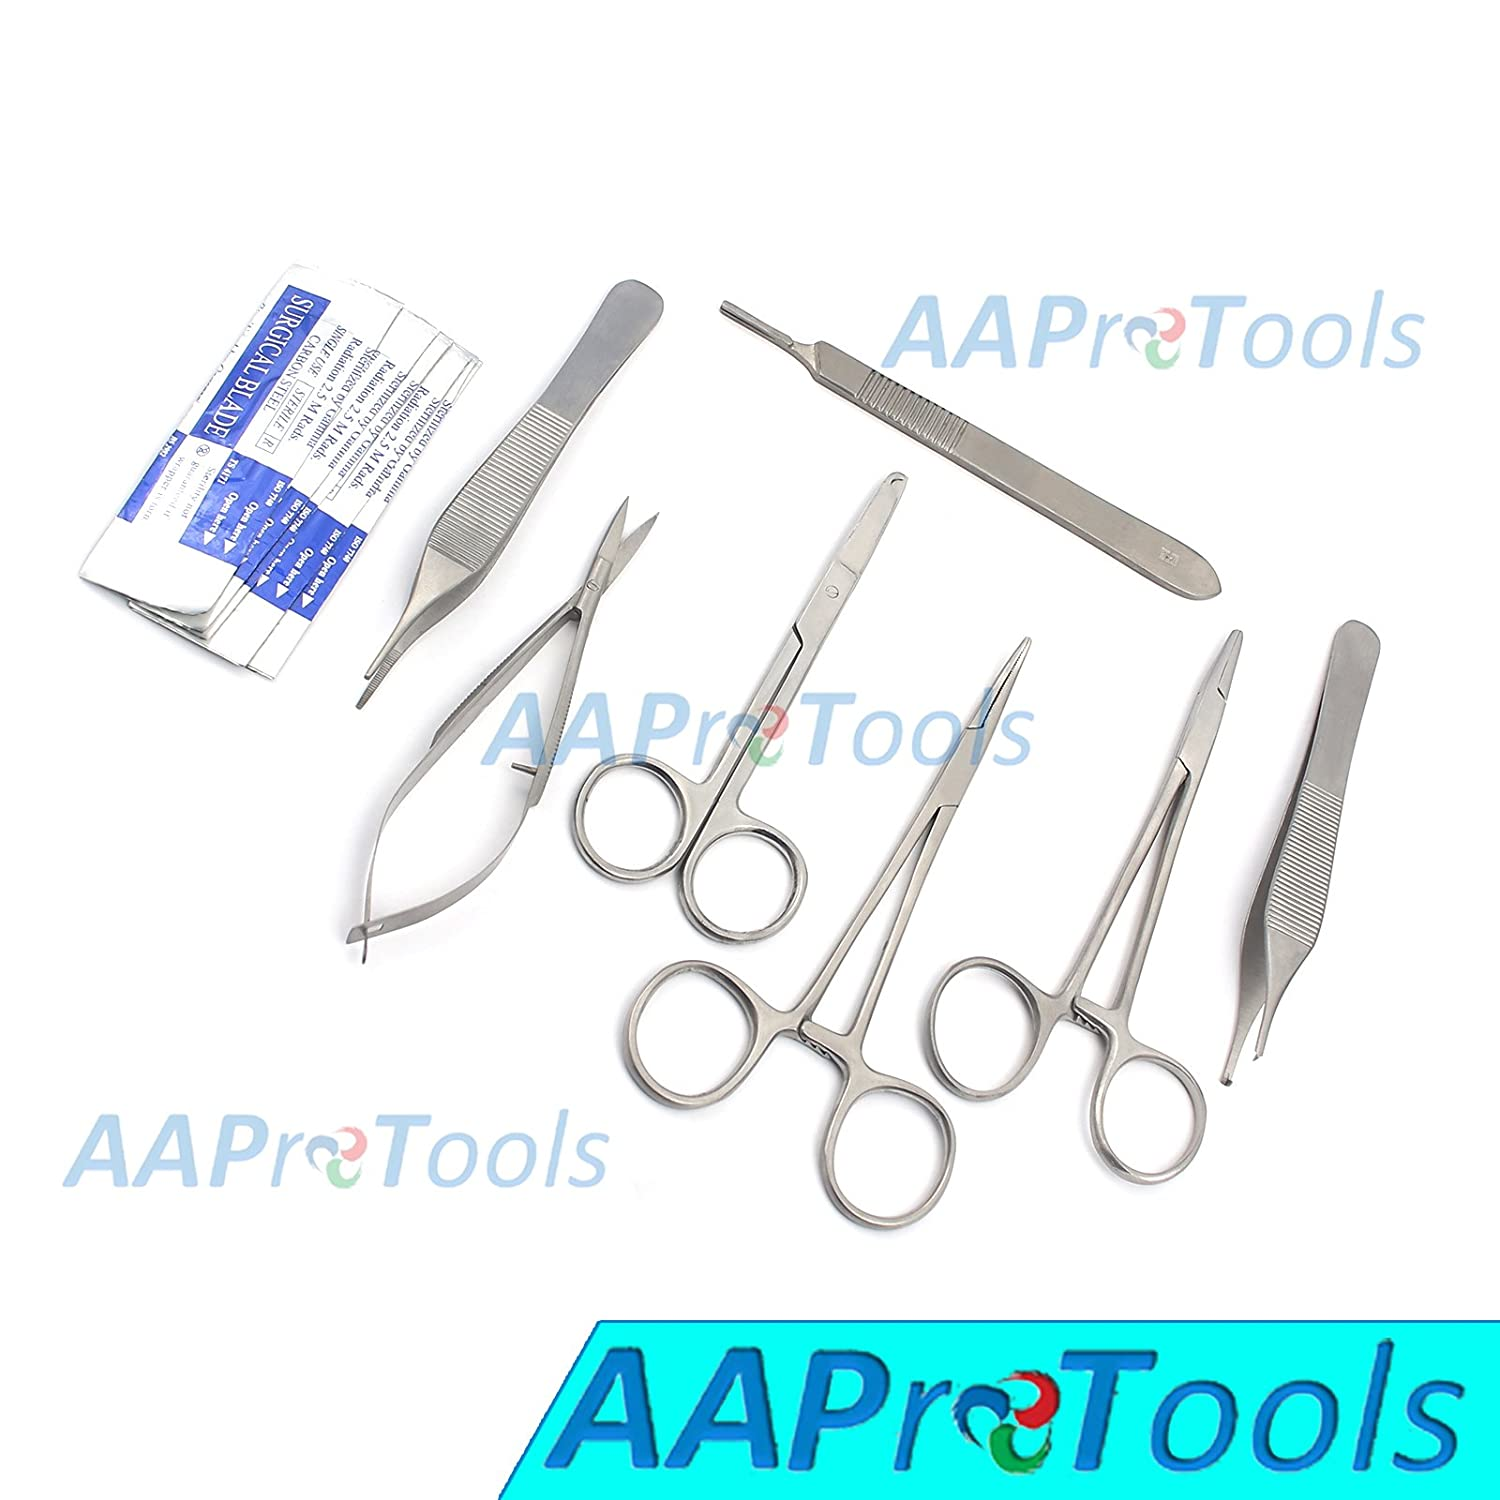 AAPROTOOLS 12 PCS Premium Grade Basic Comprehensive Laceration Removal Forceps HEMOSTATS CASTROVIEJO Scissors Instruments Set with STERILE Scalpel Blades #10 A+ Quality